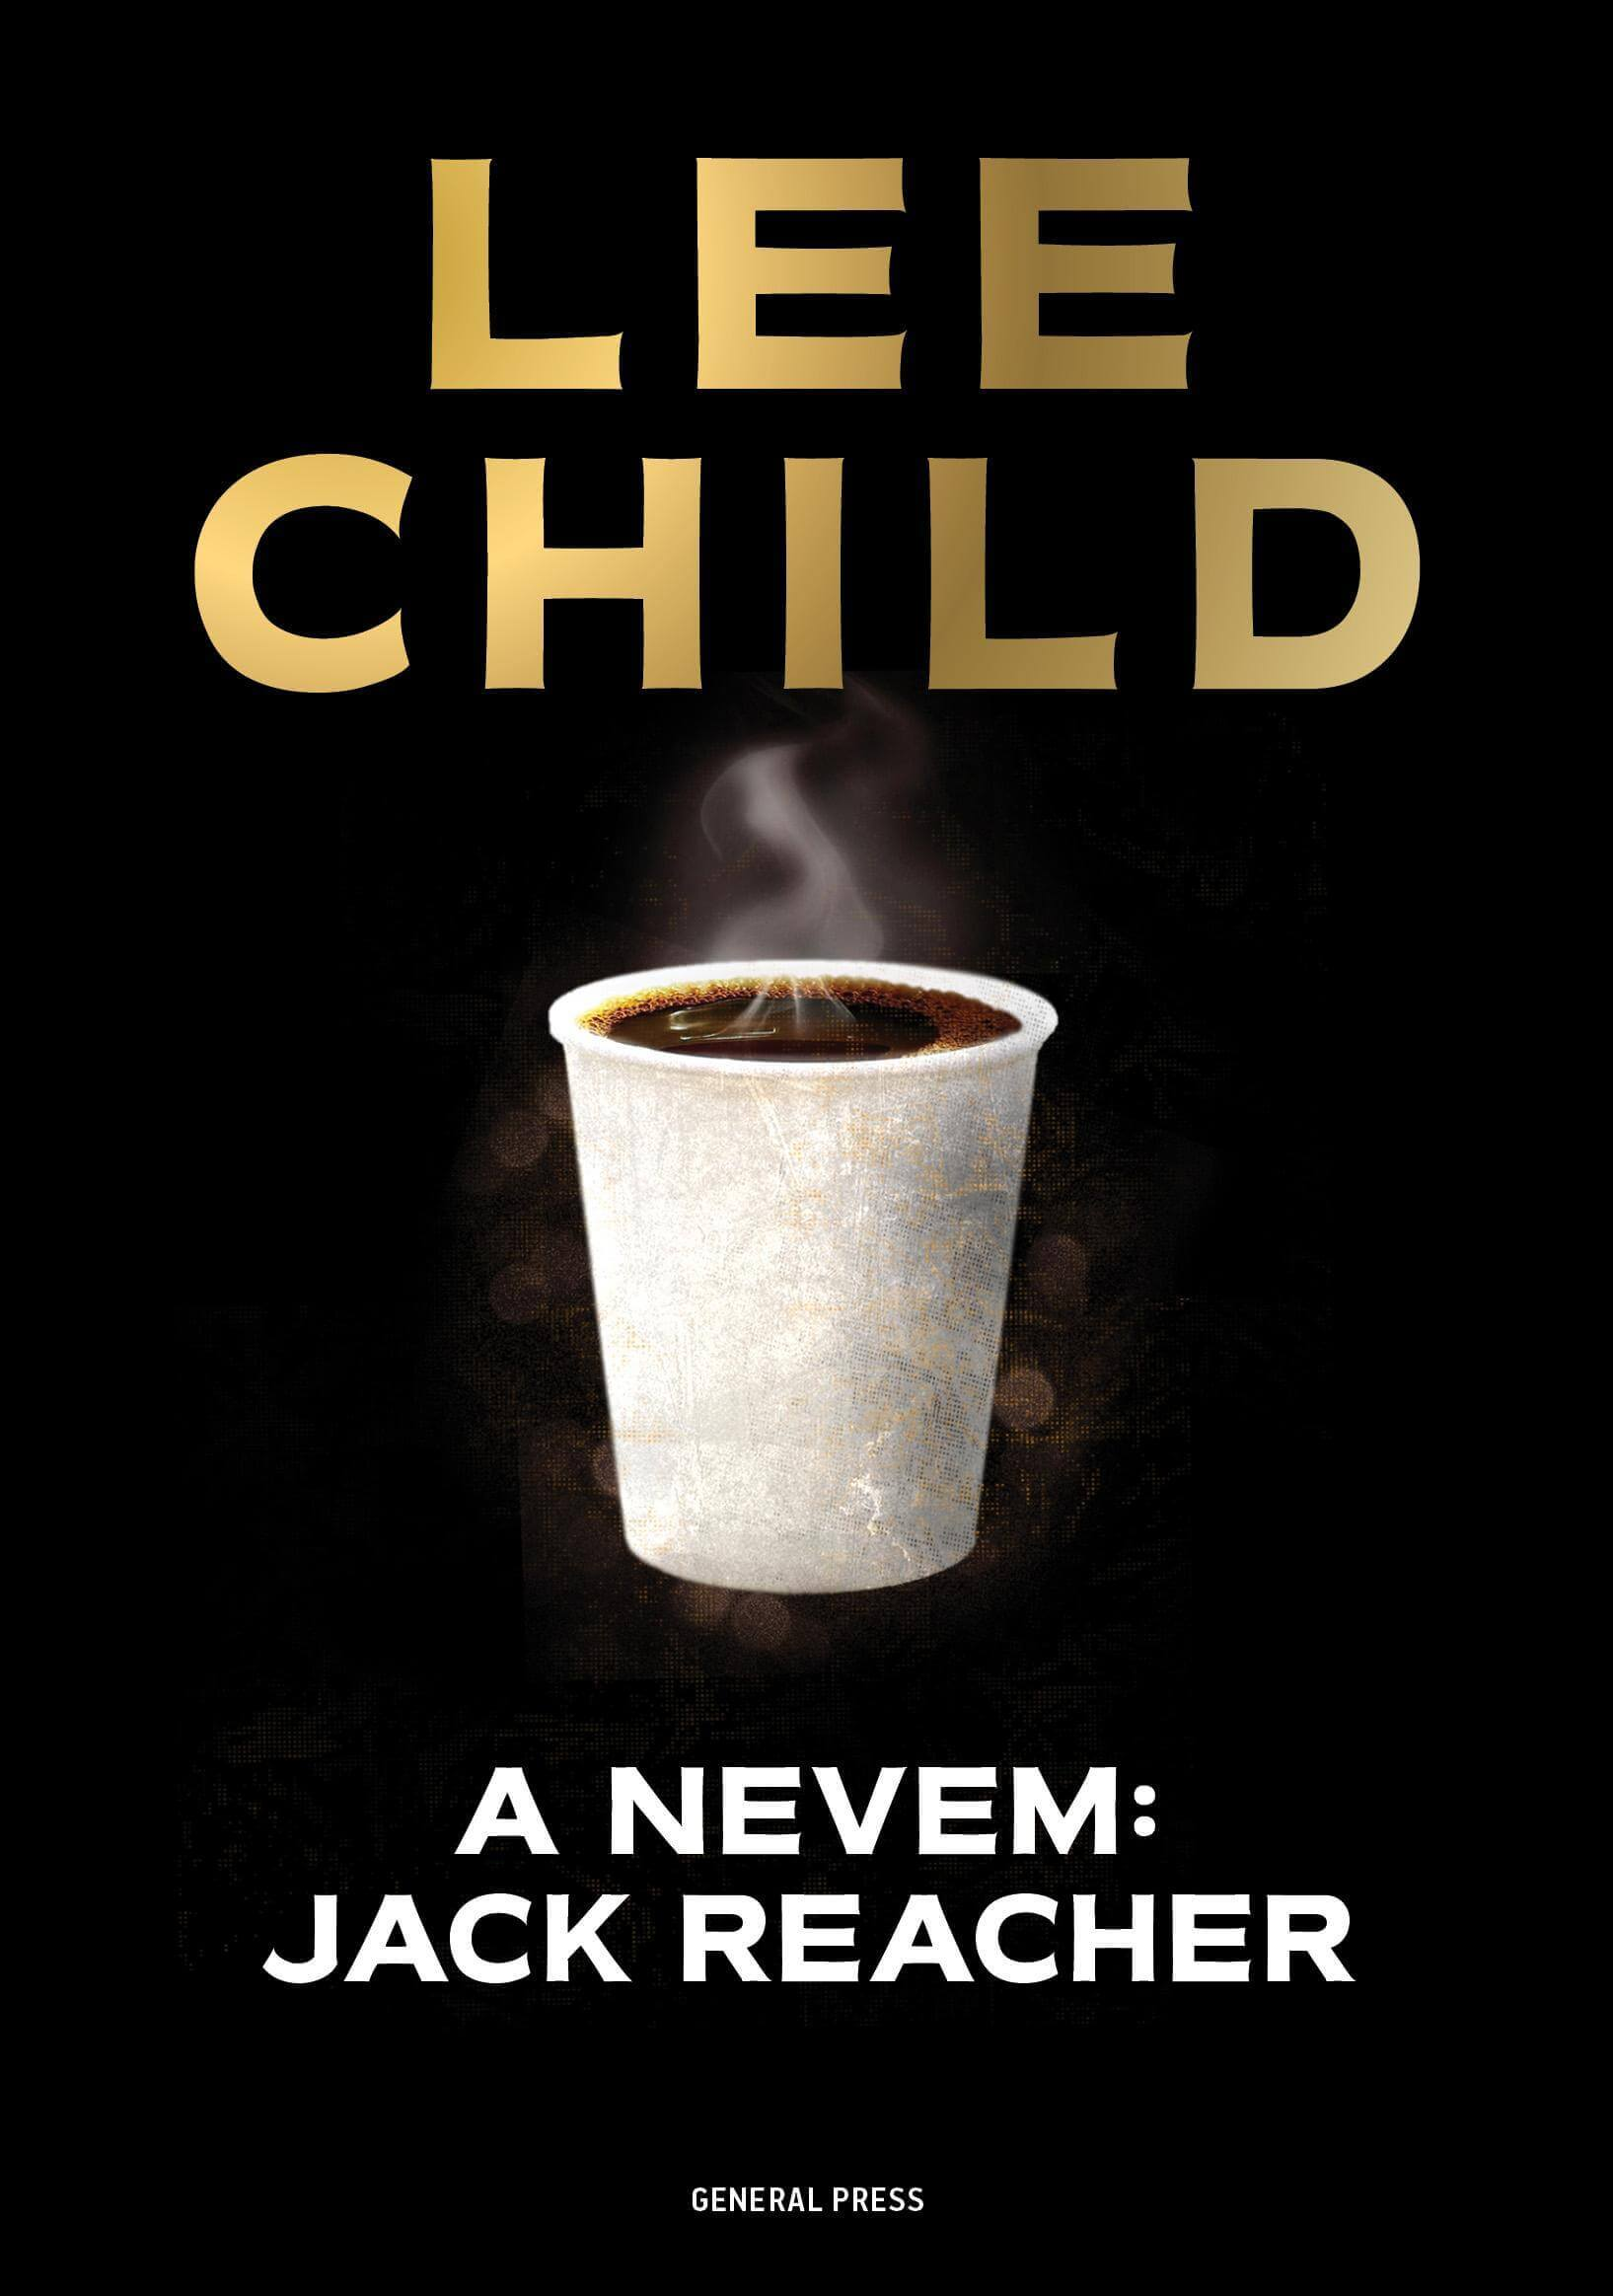 Könyv: Lee Child: A nevem: Jack Reacher - Jack Reacher novellák